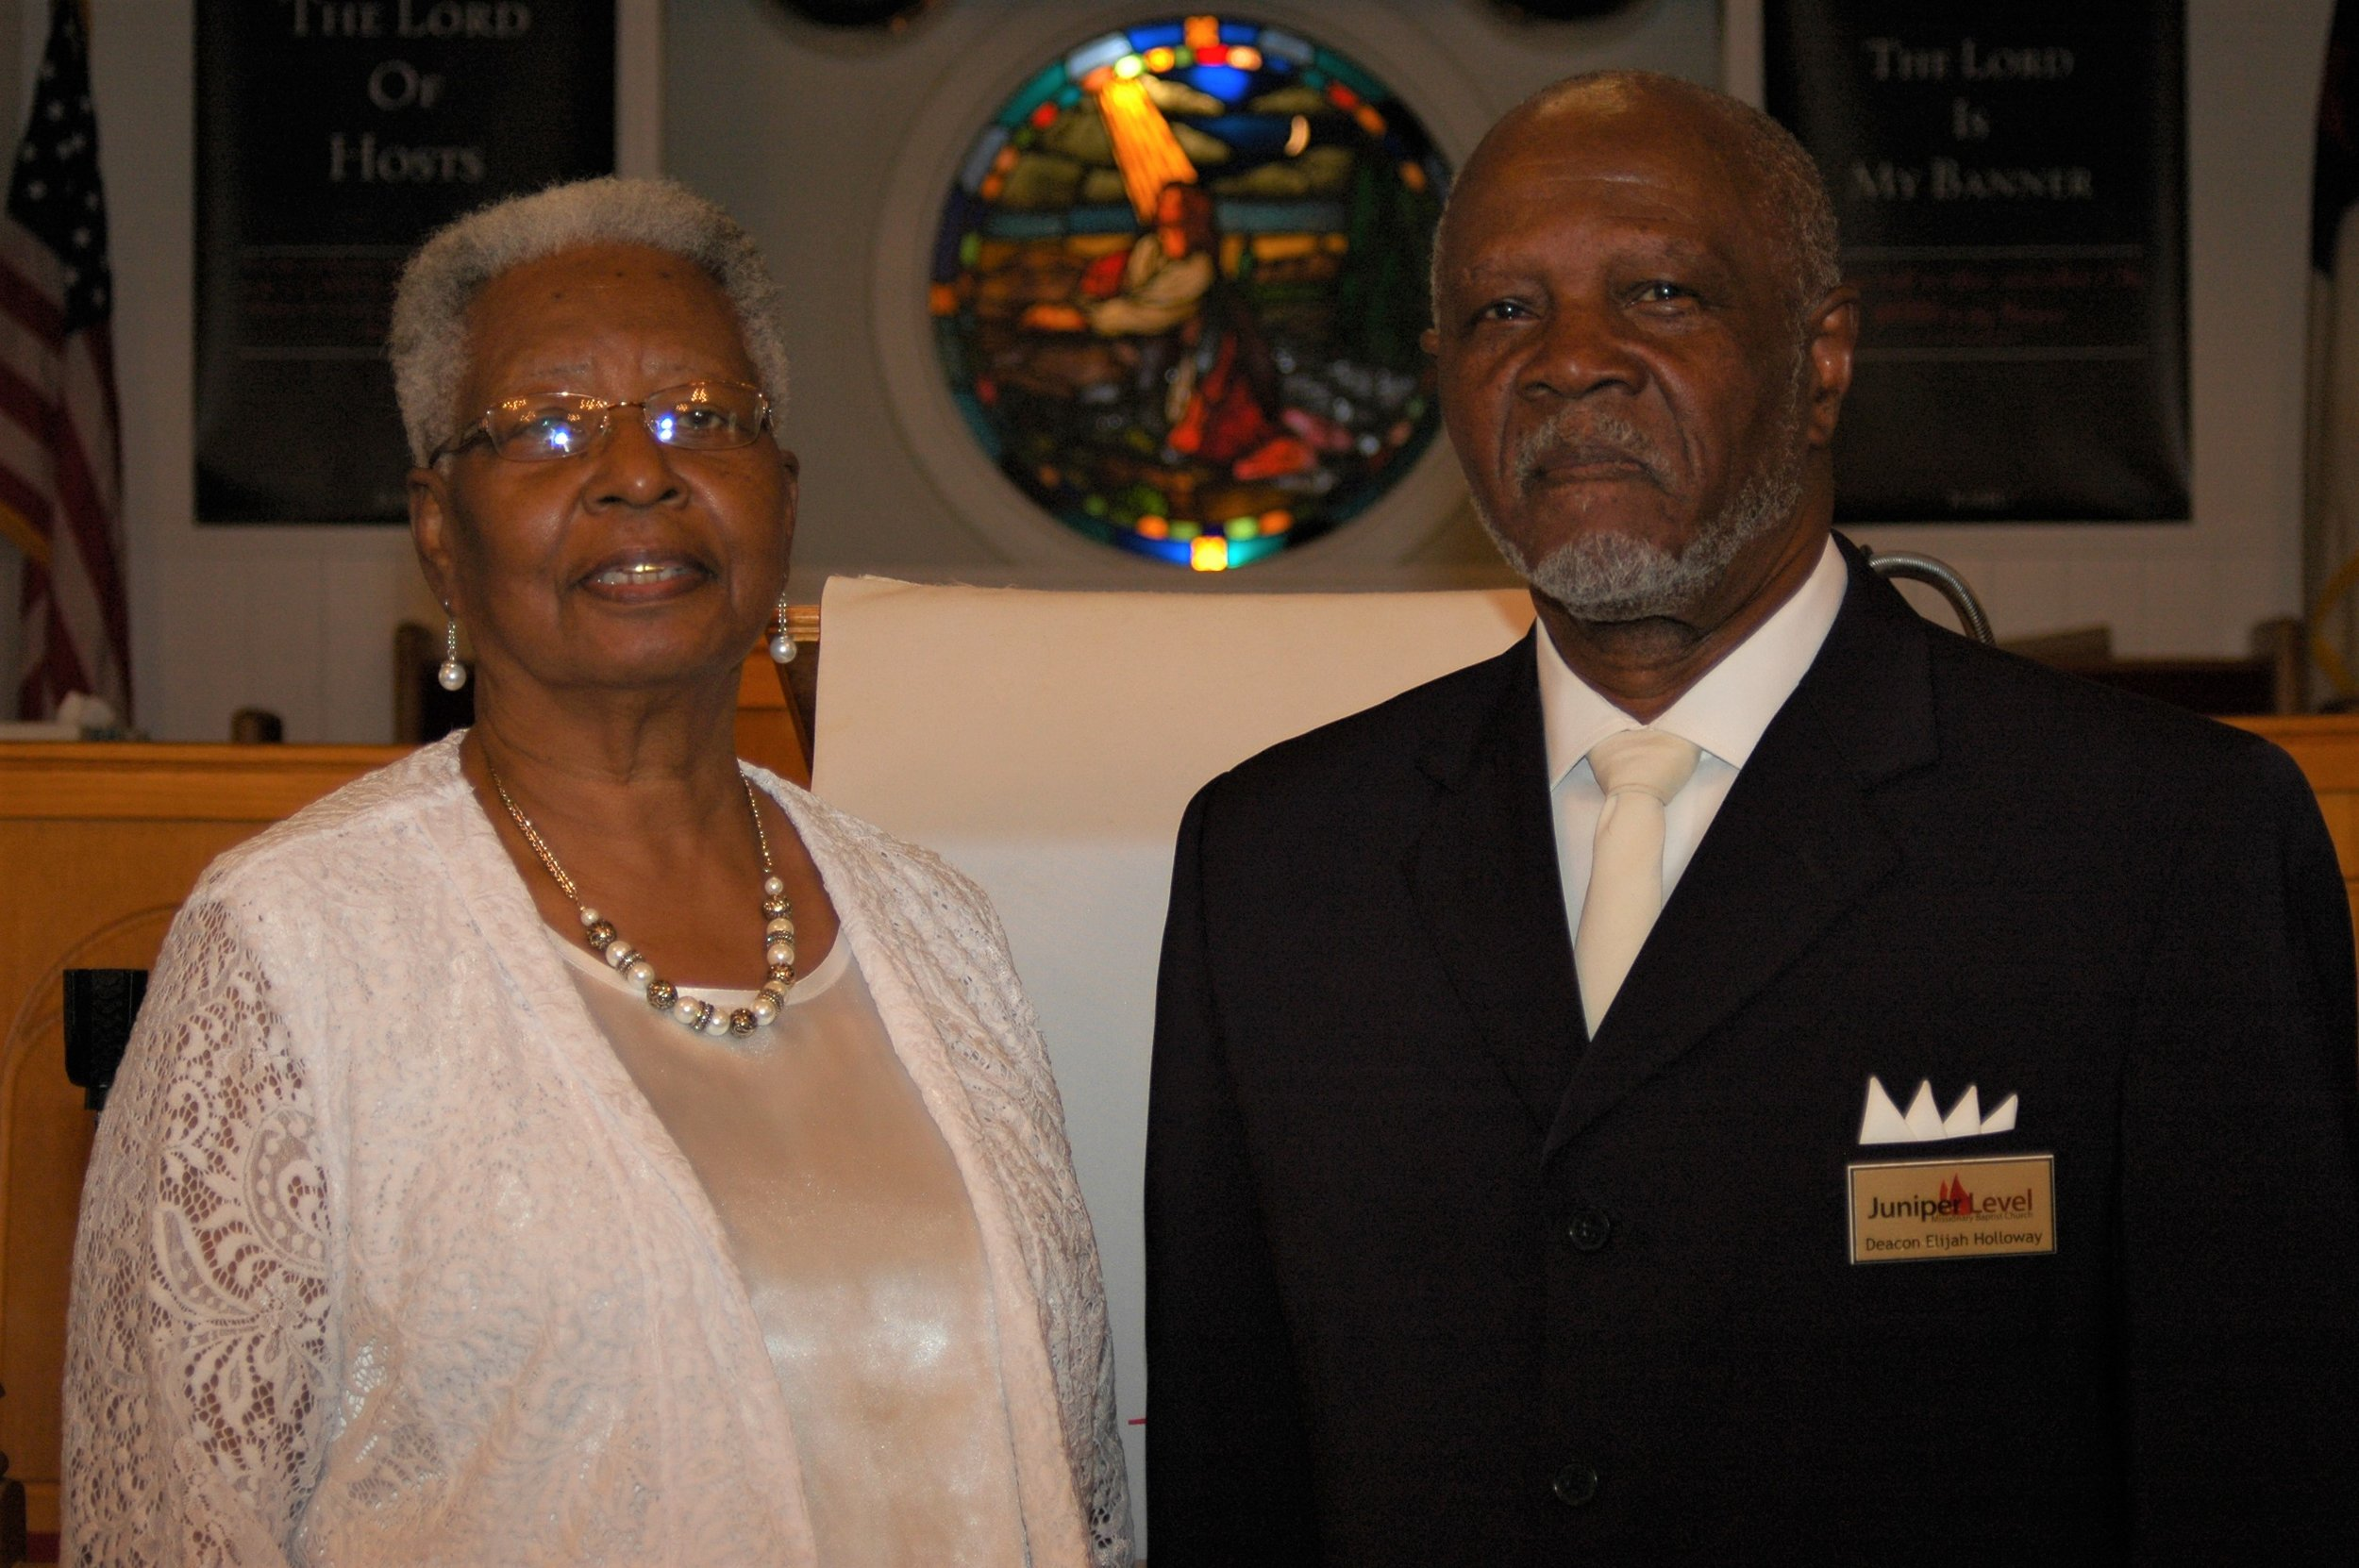 Deacon and Deaconess Elijah and Ruby Holloway